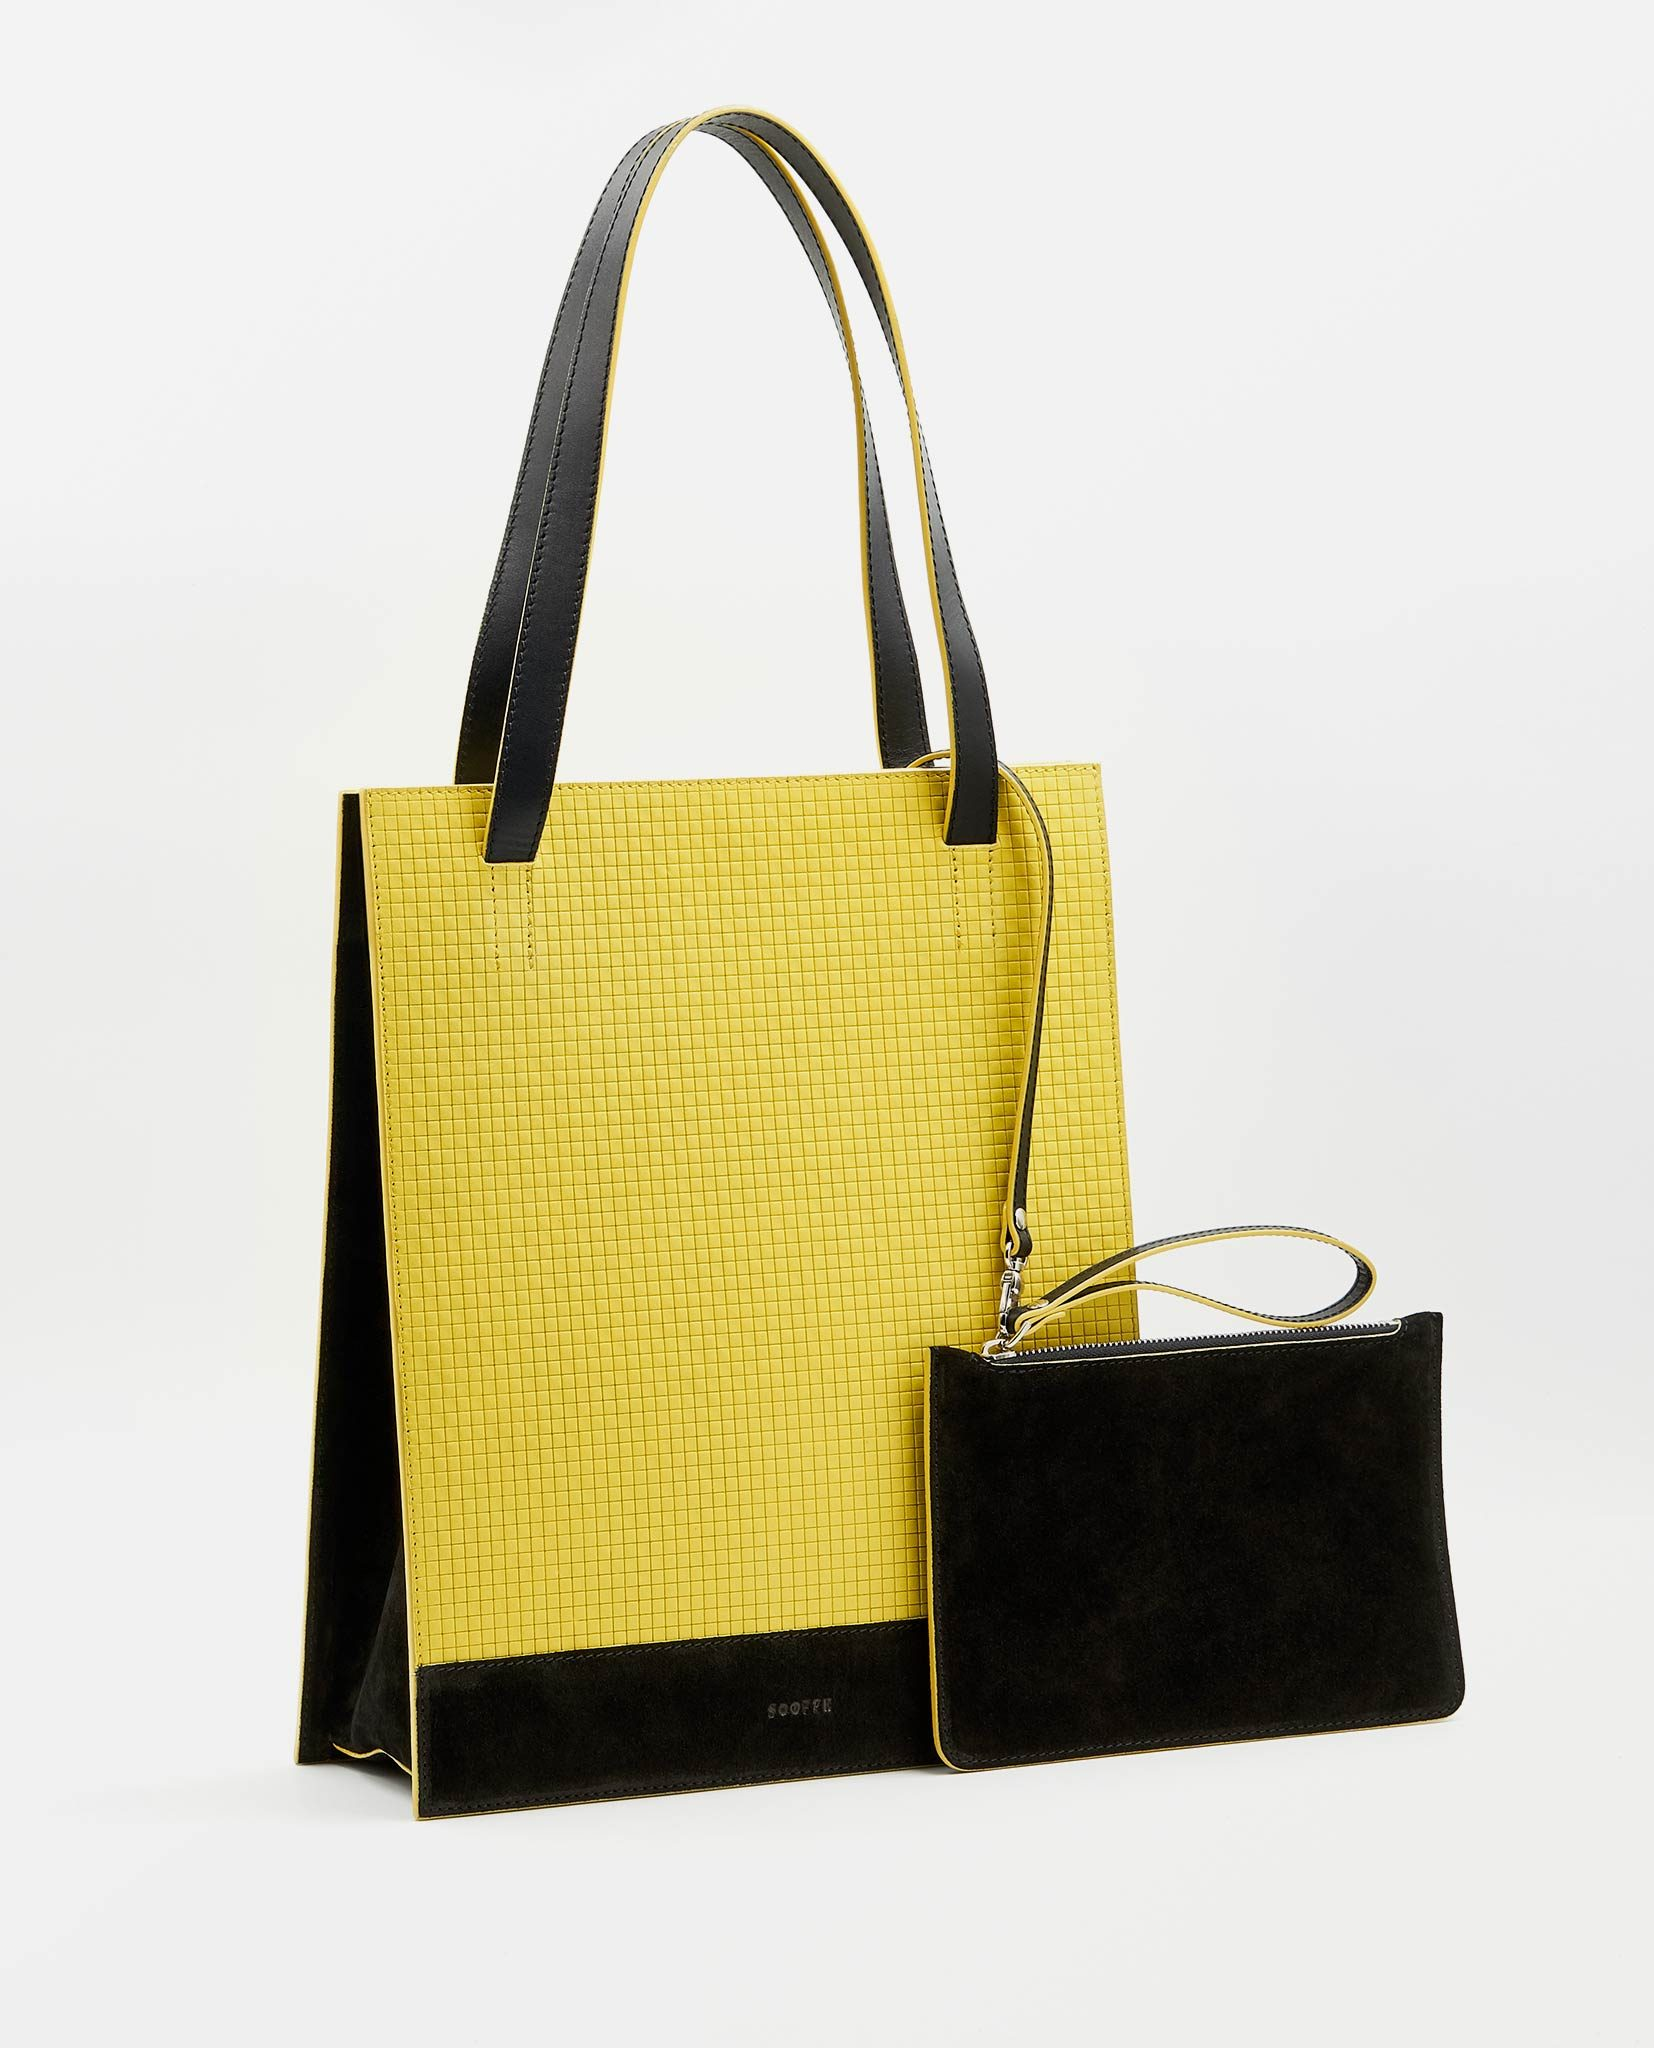 SOOFRE Berlin unique Shopper Bag squared yellow black